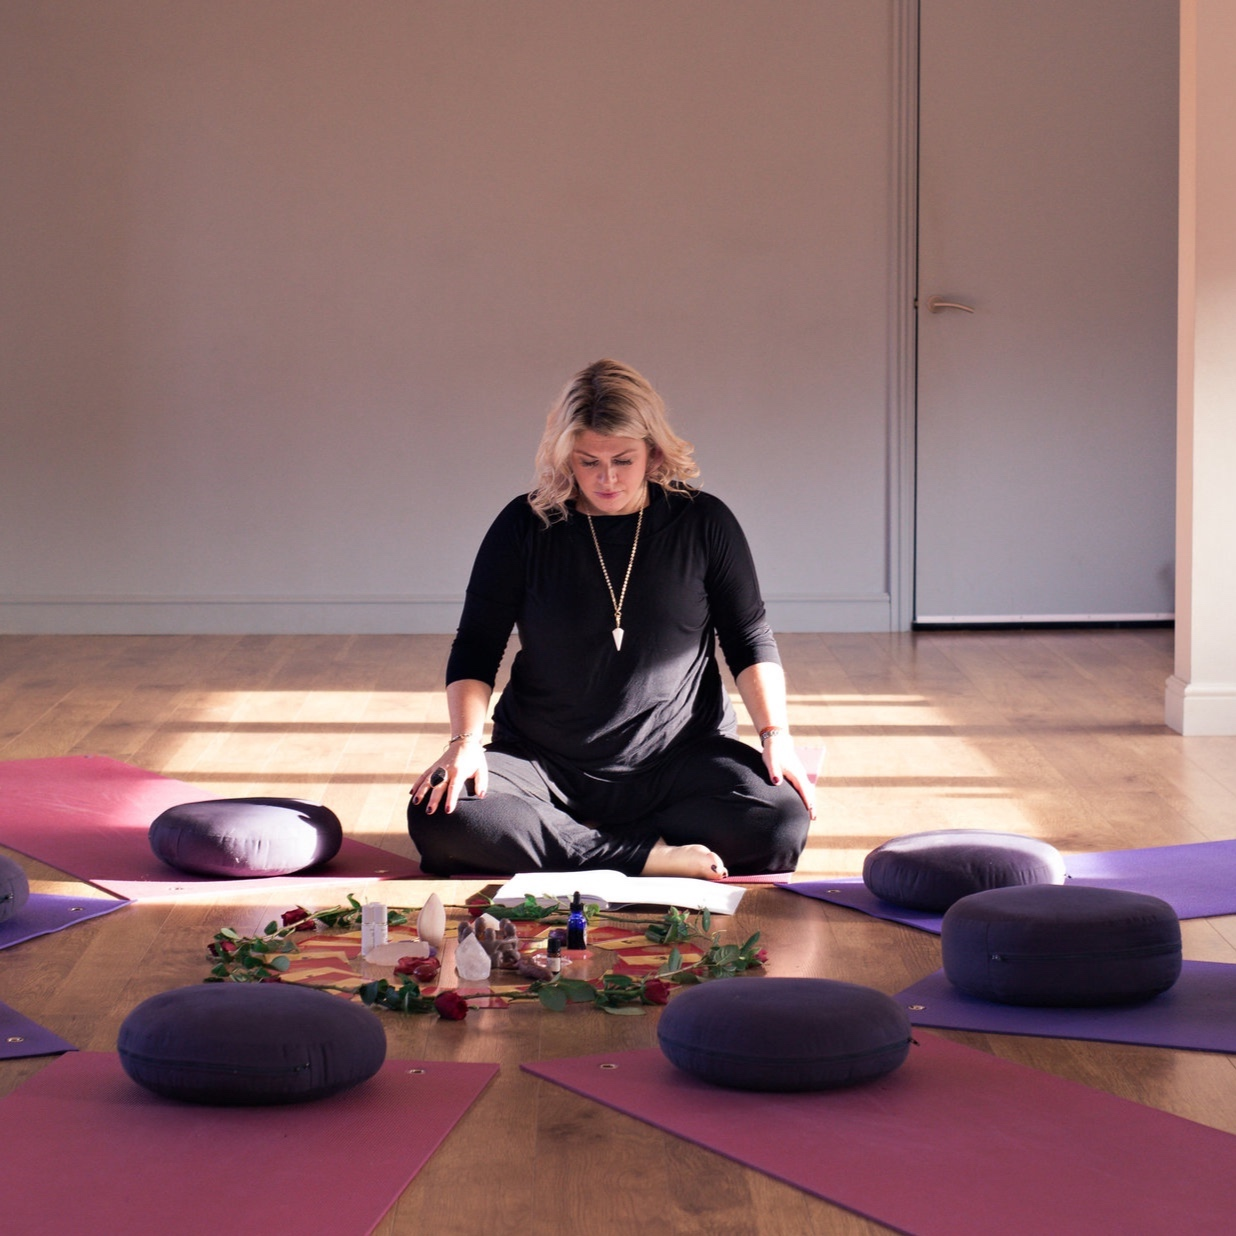 create - Explore ancient practices and rituals. Feel at home in your body and discover the joy in creativity expression.